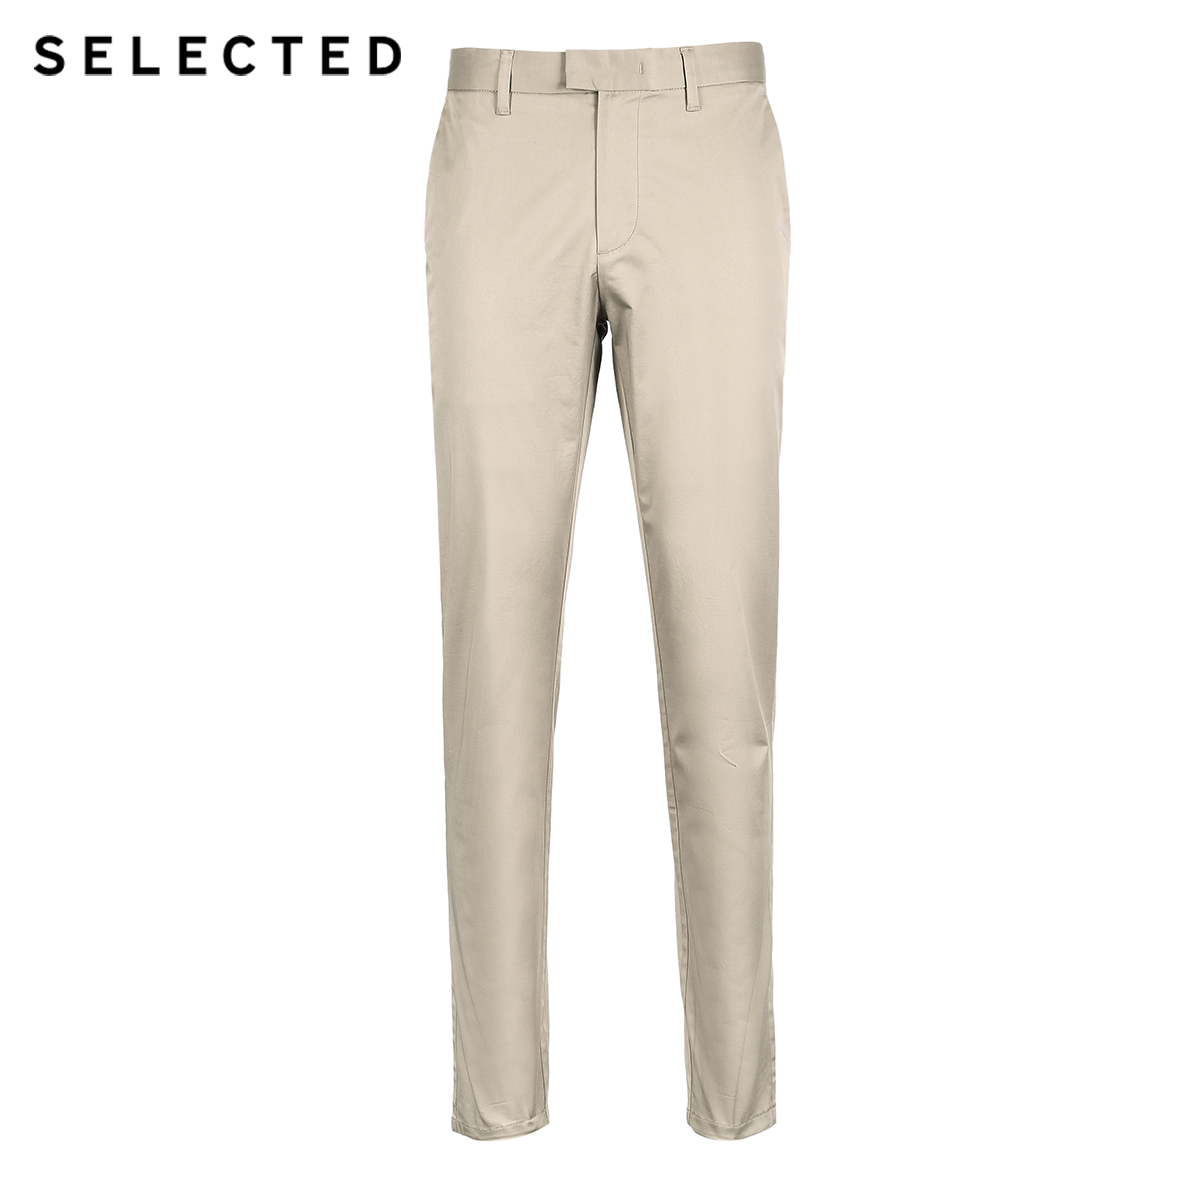 SELECTED autumn new men's Micro bomb pure color, body wash, casual pants S|418314529